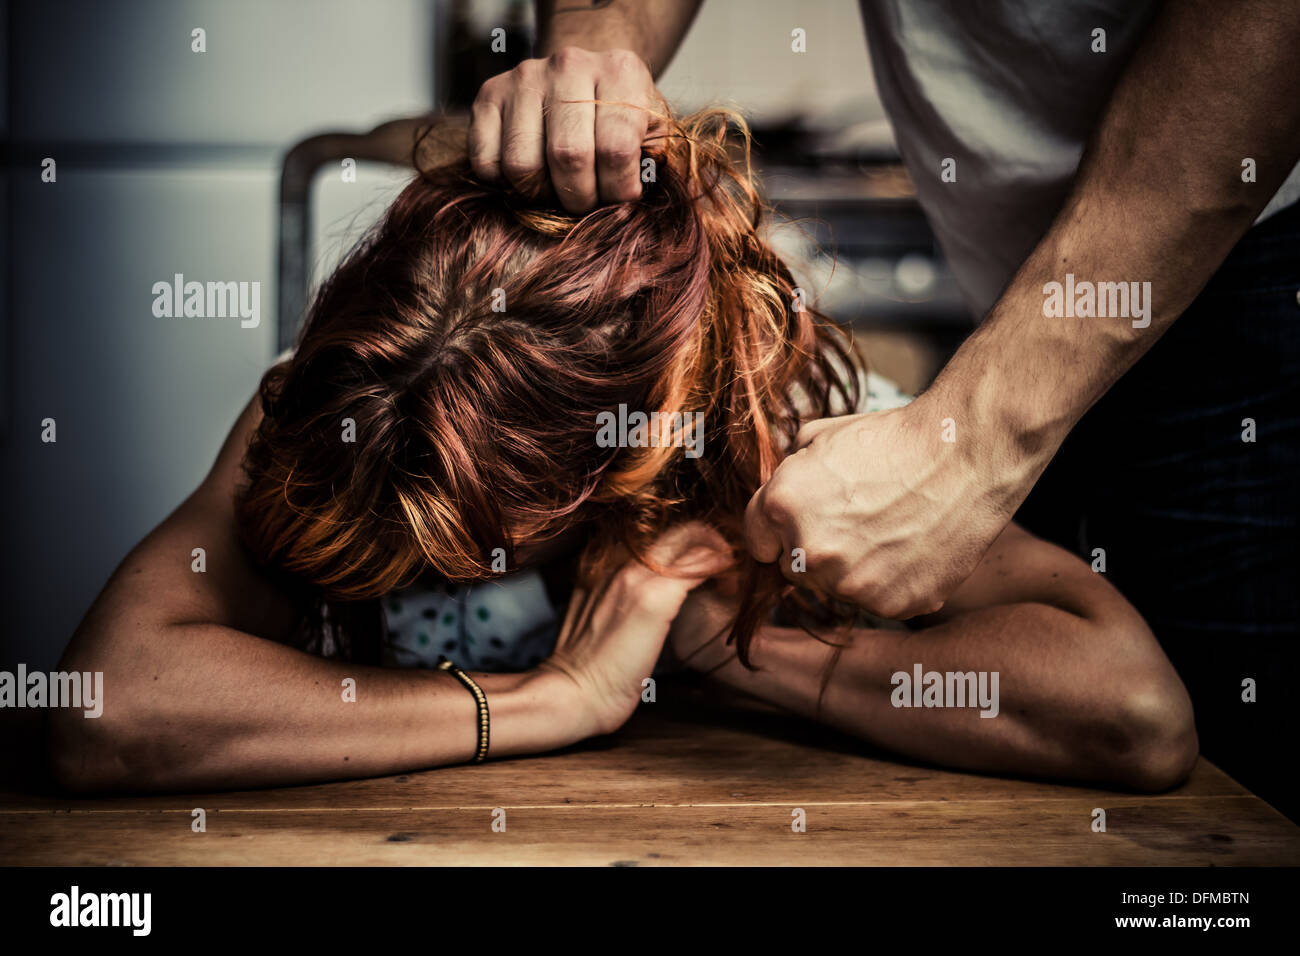 Man pulling the hair of his wife and threatening to punch her - Stock Image